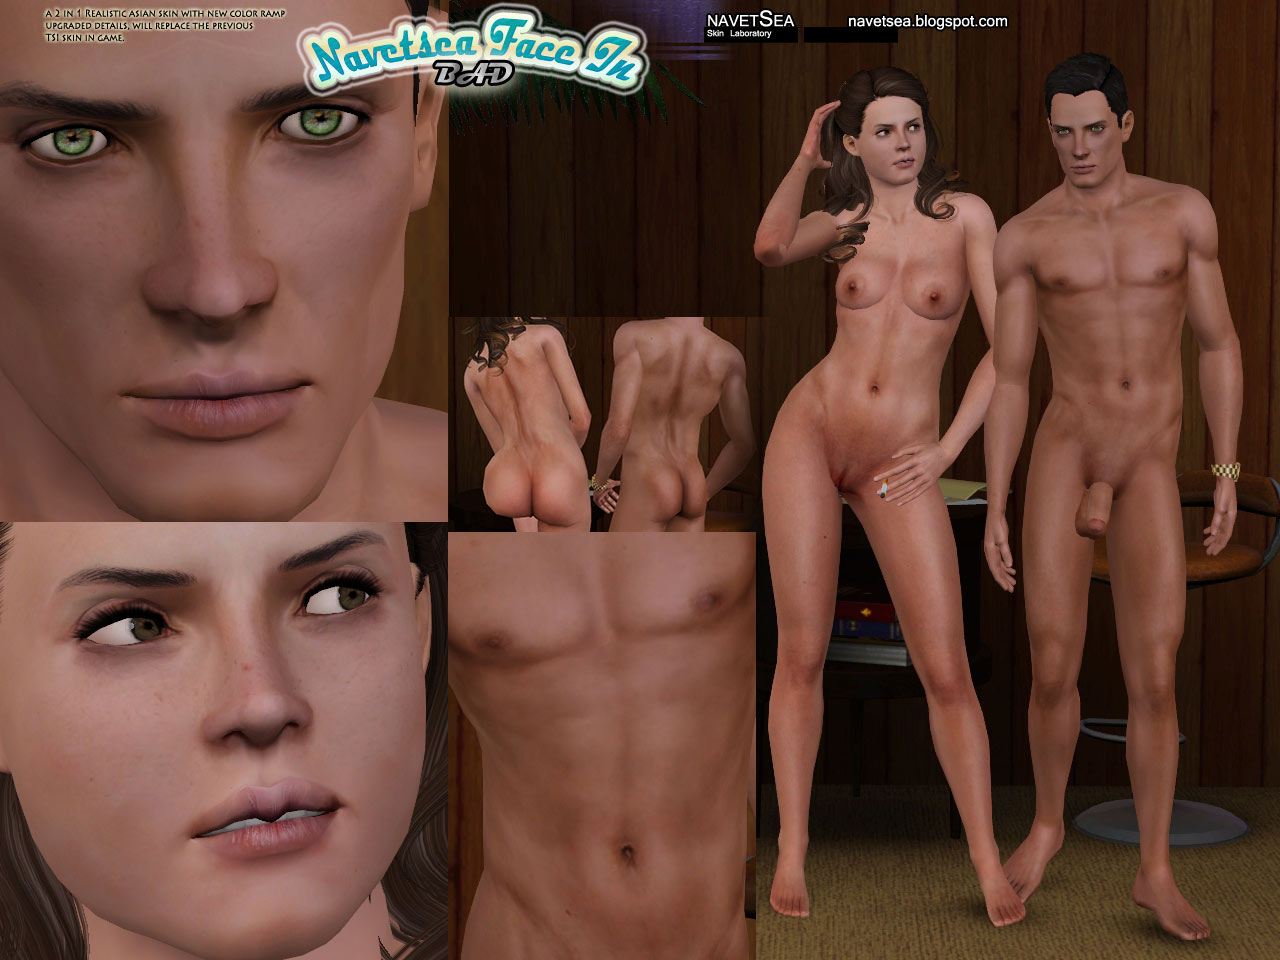 Sims 2 nude patches and cheats hentia clips